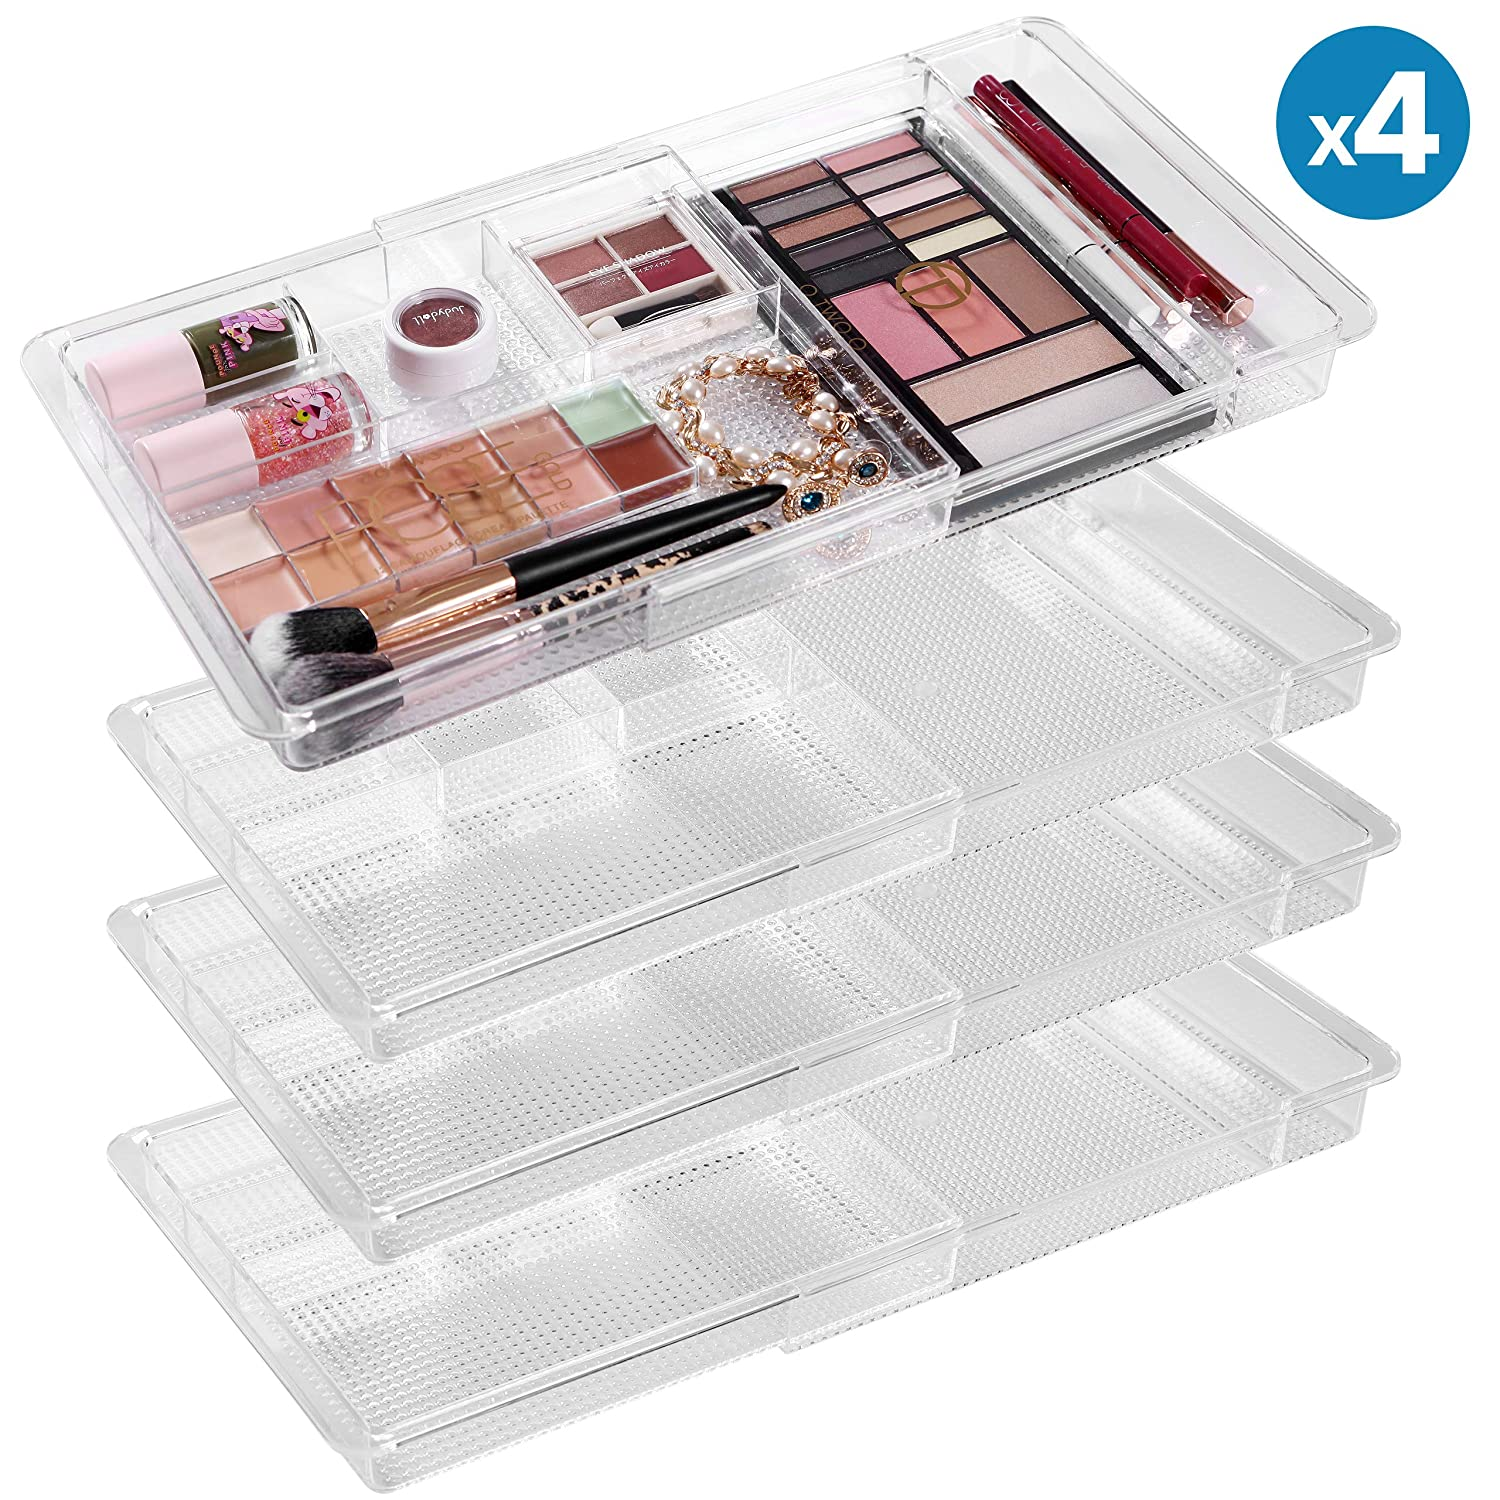 "MoMA Expandable Makeup Organizer - 11""x 7.7""x 1.2""Adjustable Makeup Brush Organizer (4 Packs) - Clear Plastic Makeup Organizer for Bathroom Drawers, Vanities, Countertops - Scalable Cosmetics Organize"